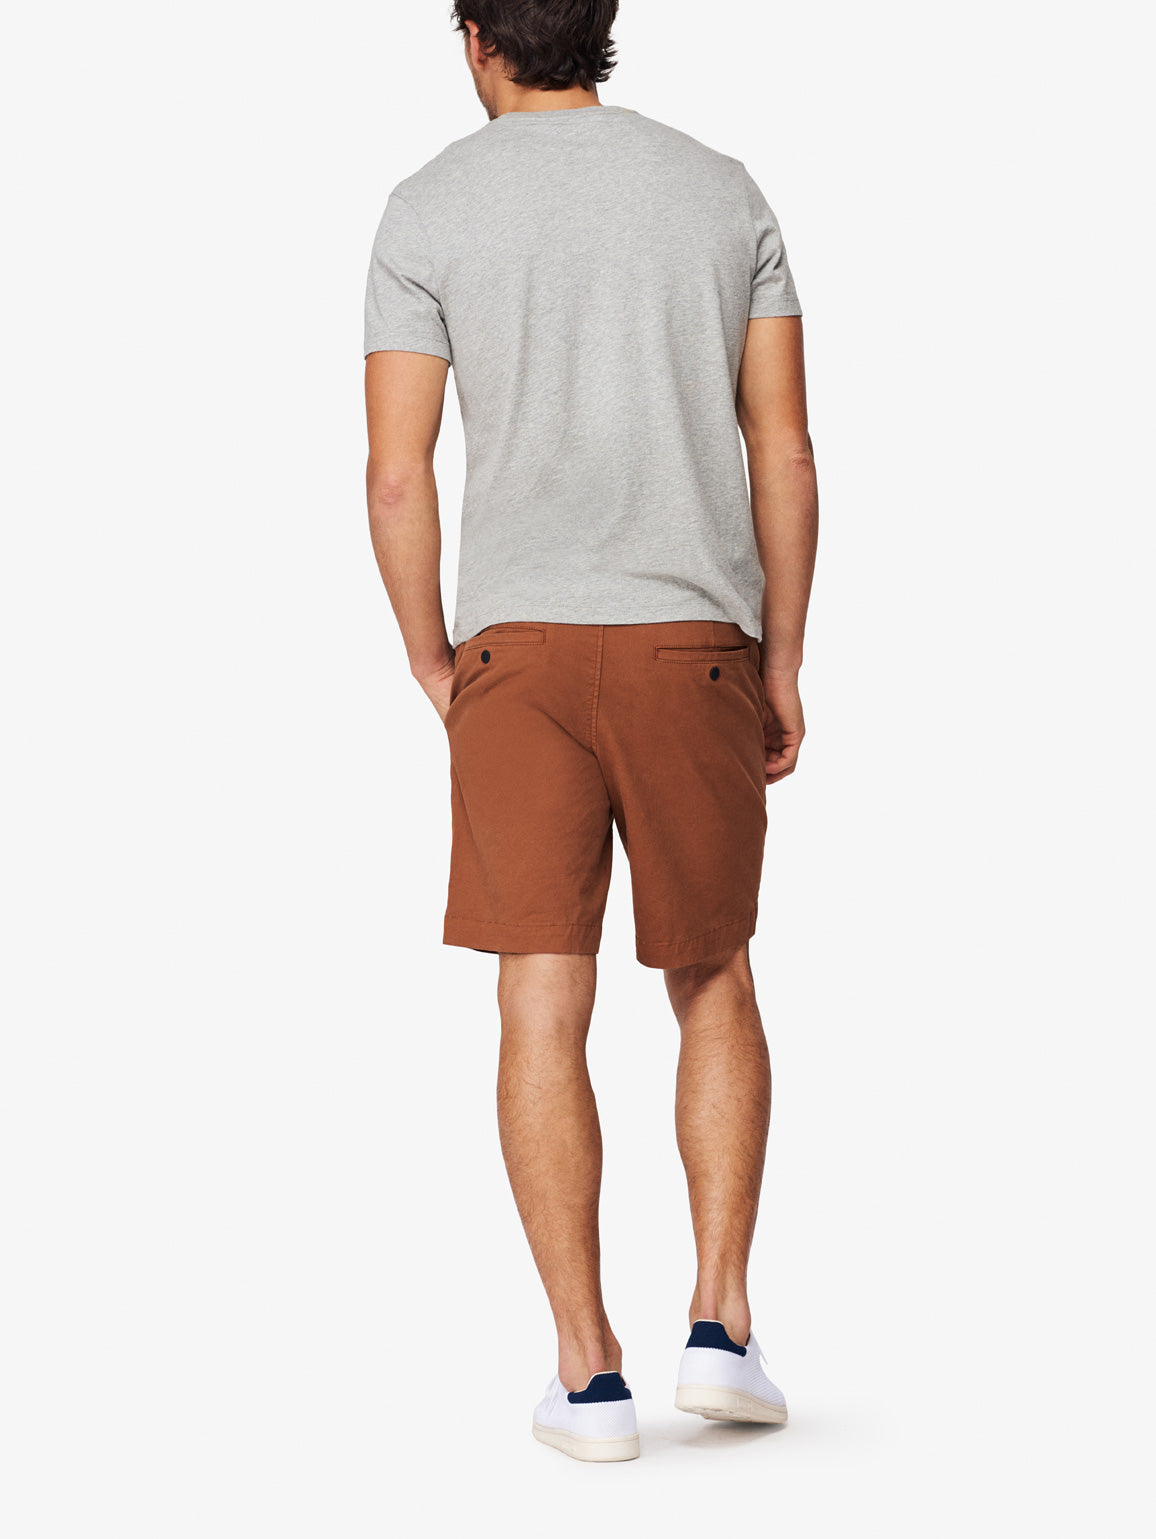 Jake Chino Short | Terracotta DL 1961 Denim